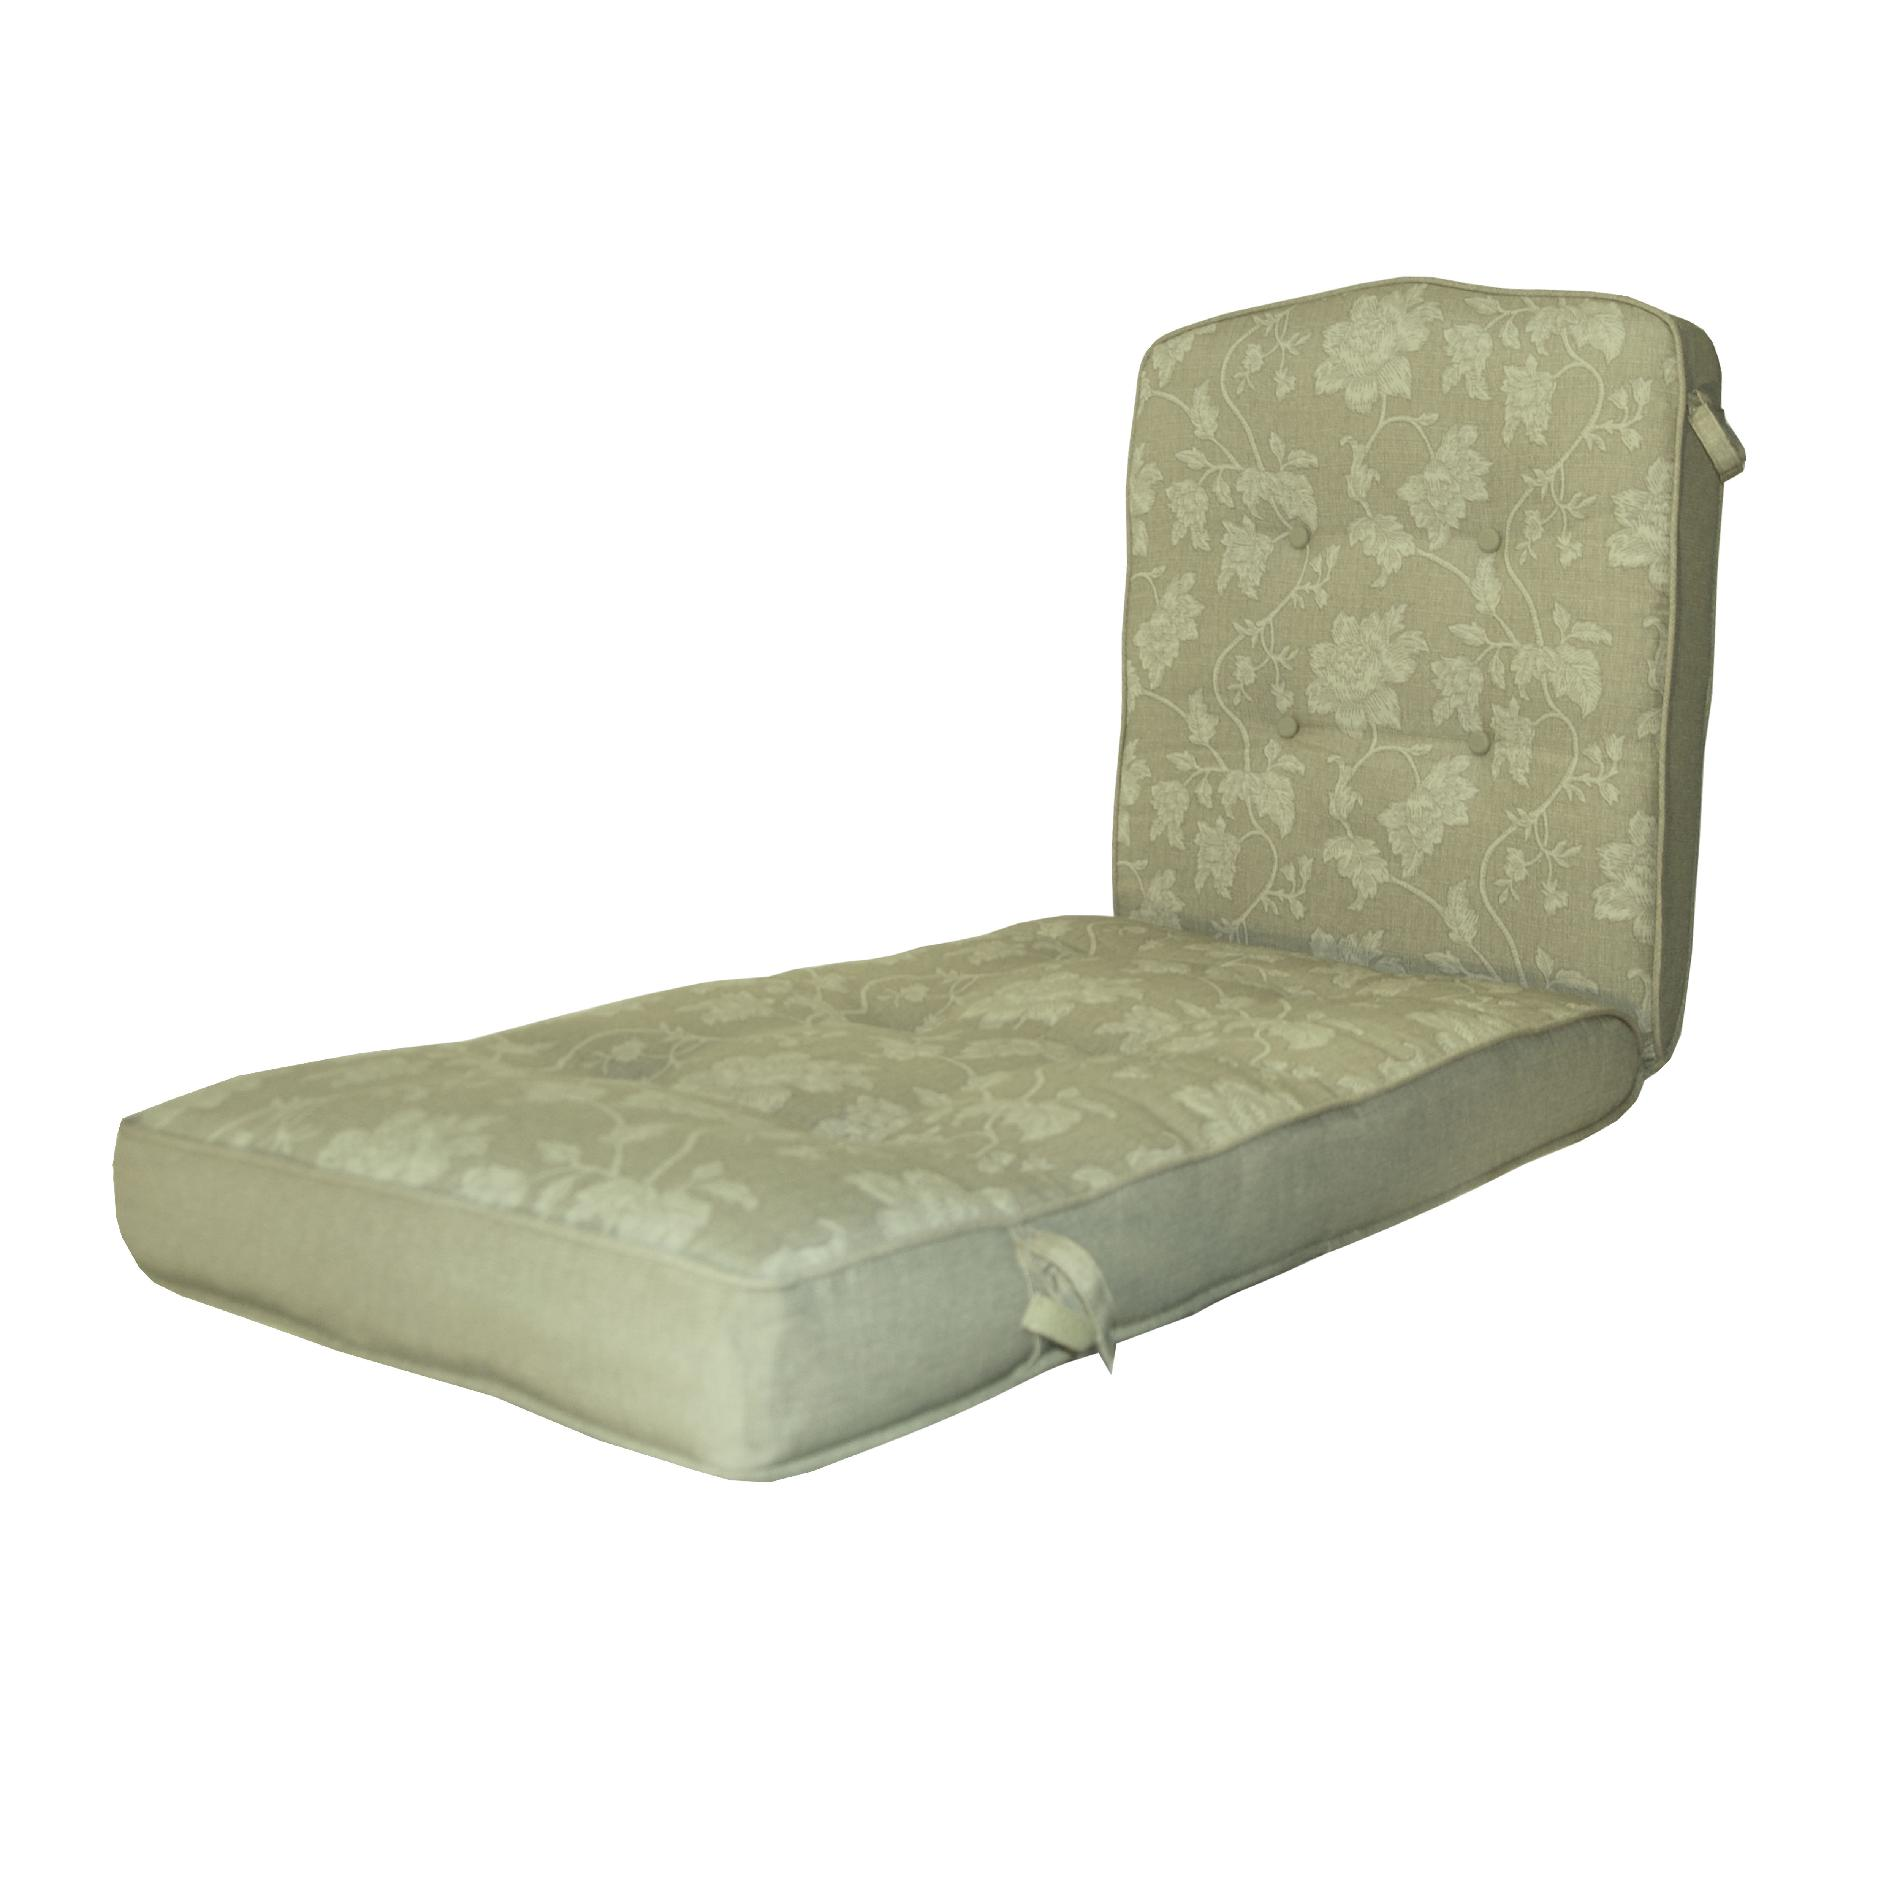 sun lounge chairs kmart best non rolling office chair jaclyn smith cora replacement chaise cushion limited